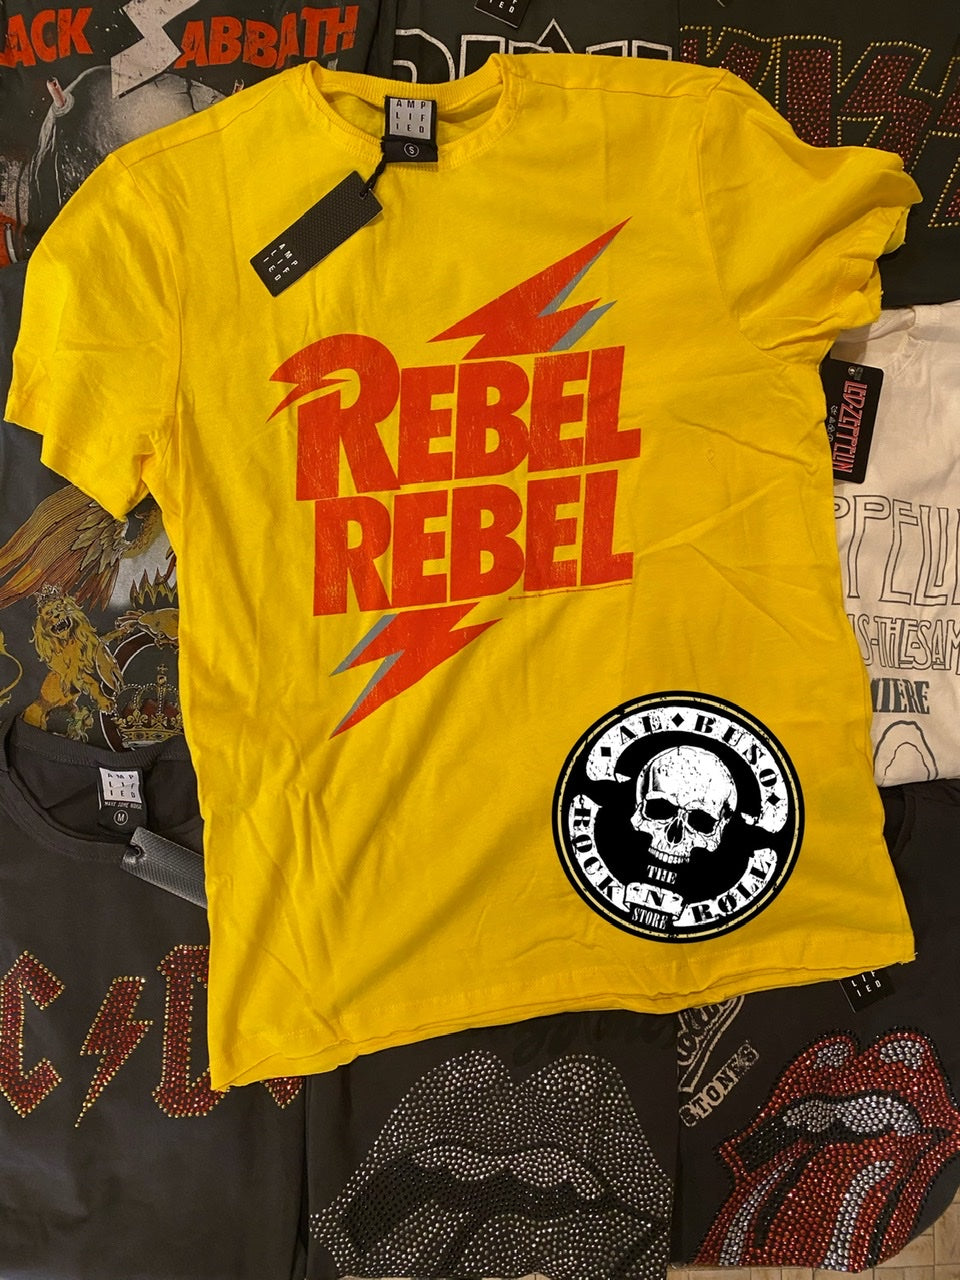 DAVID BOWIE - REBEL REBEL YELLOW